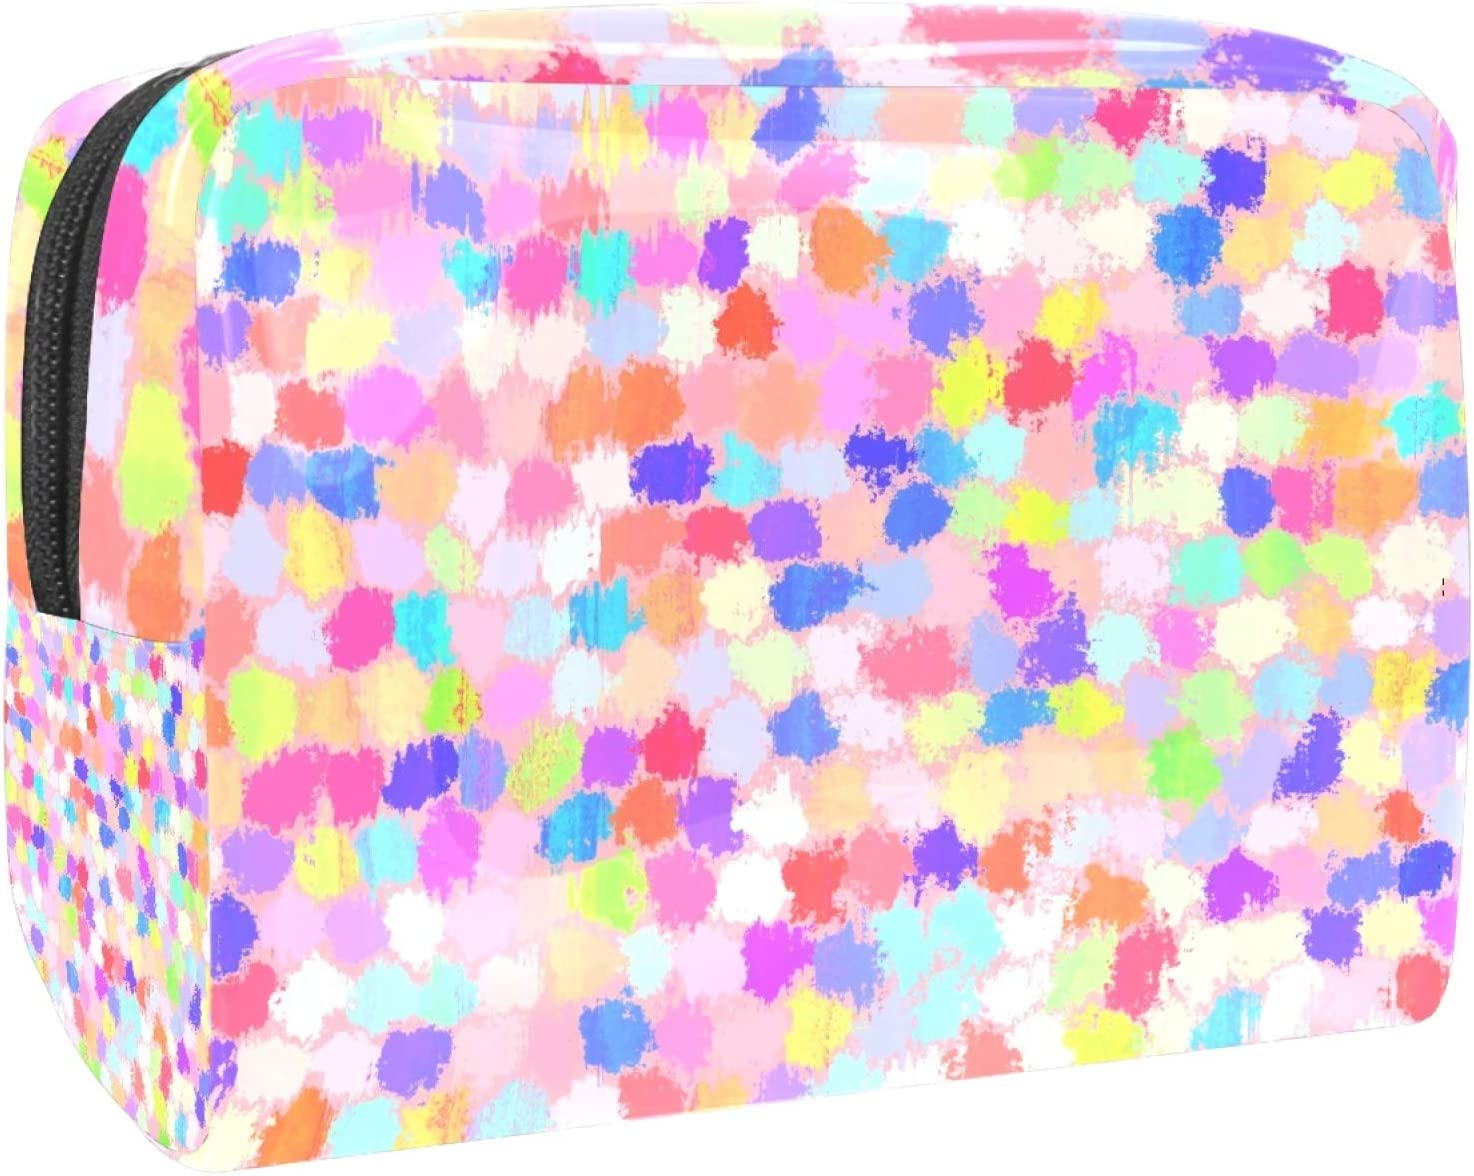 Painted Japan Maker New Points San Antonio Mall Colorful Pink Purple 7.3x3x5.1i Blue bag toiletry